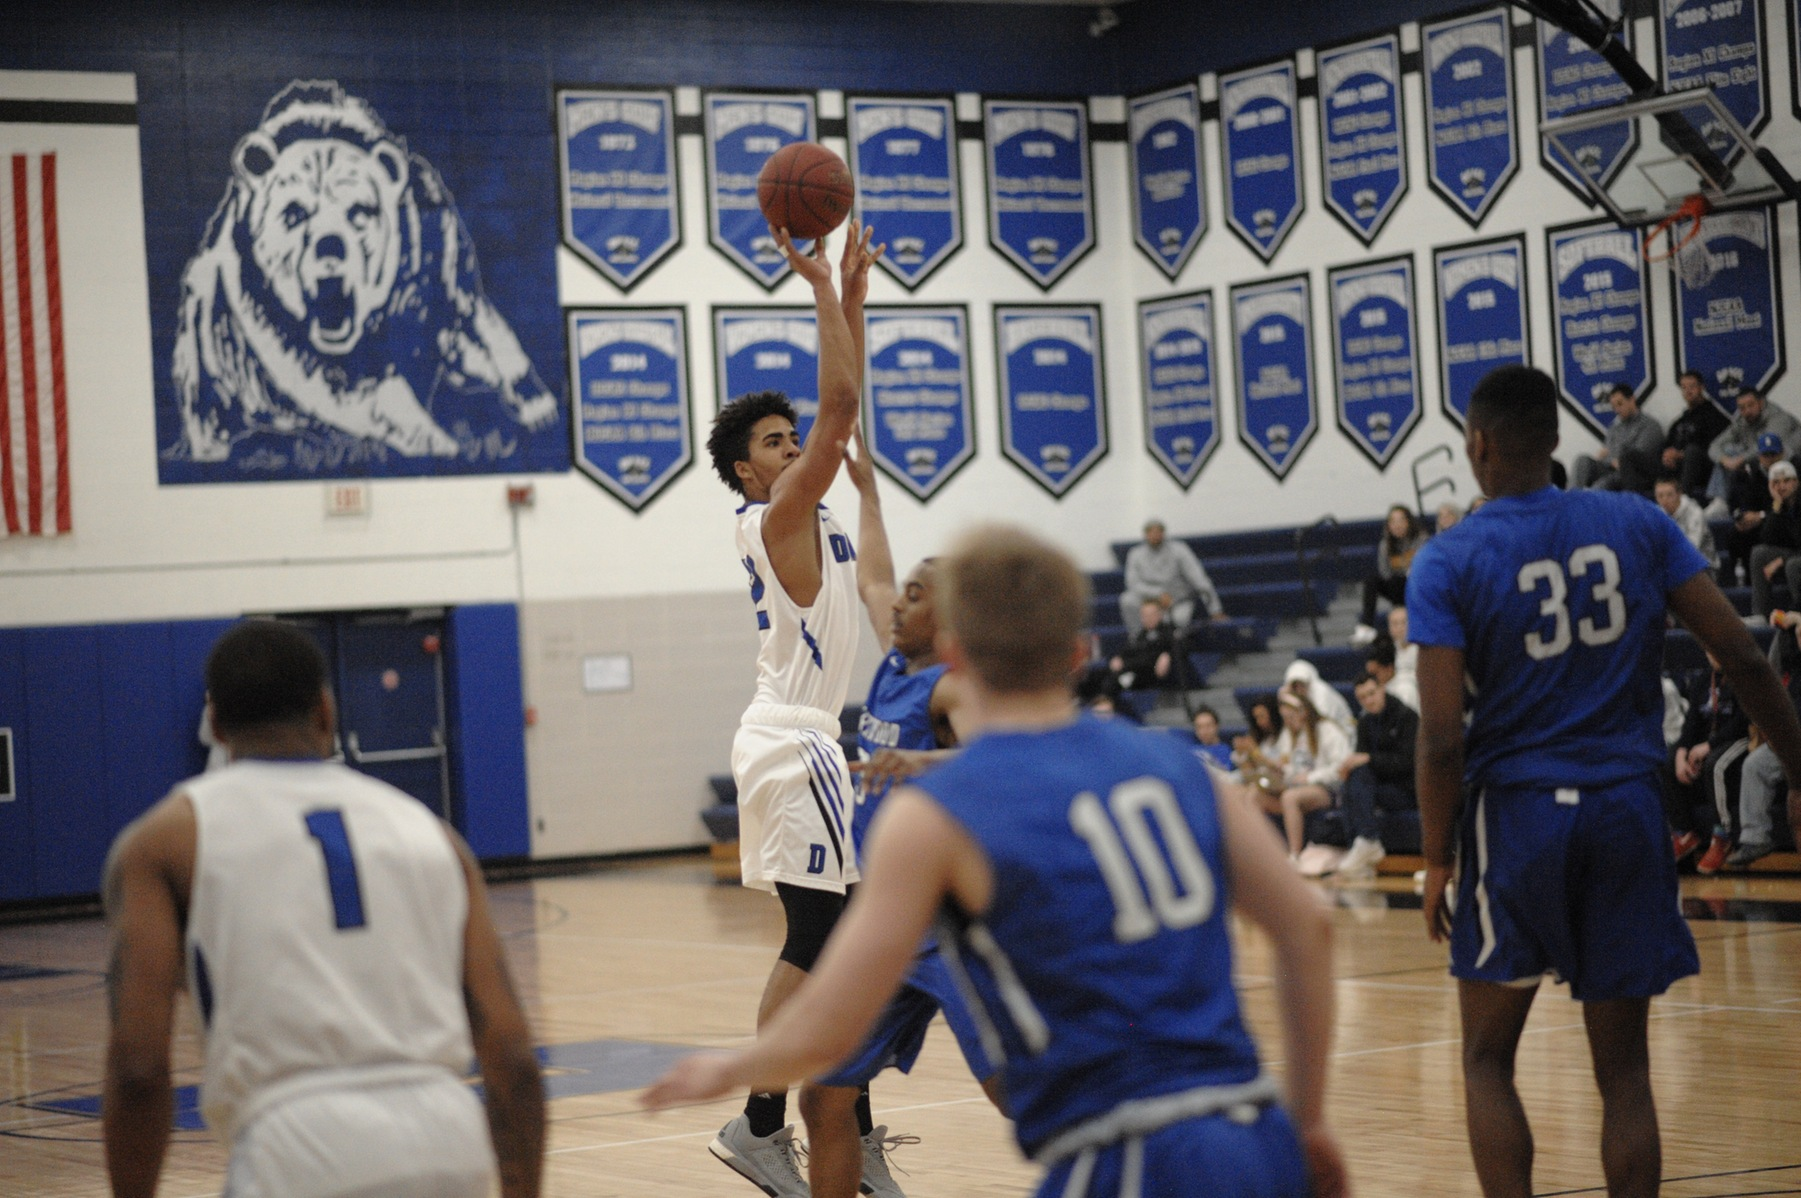 DMACC men's basketball team tops LPT, upsets NIACC